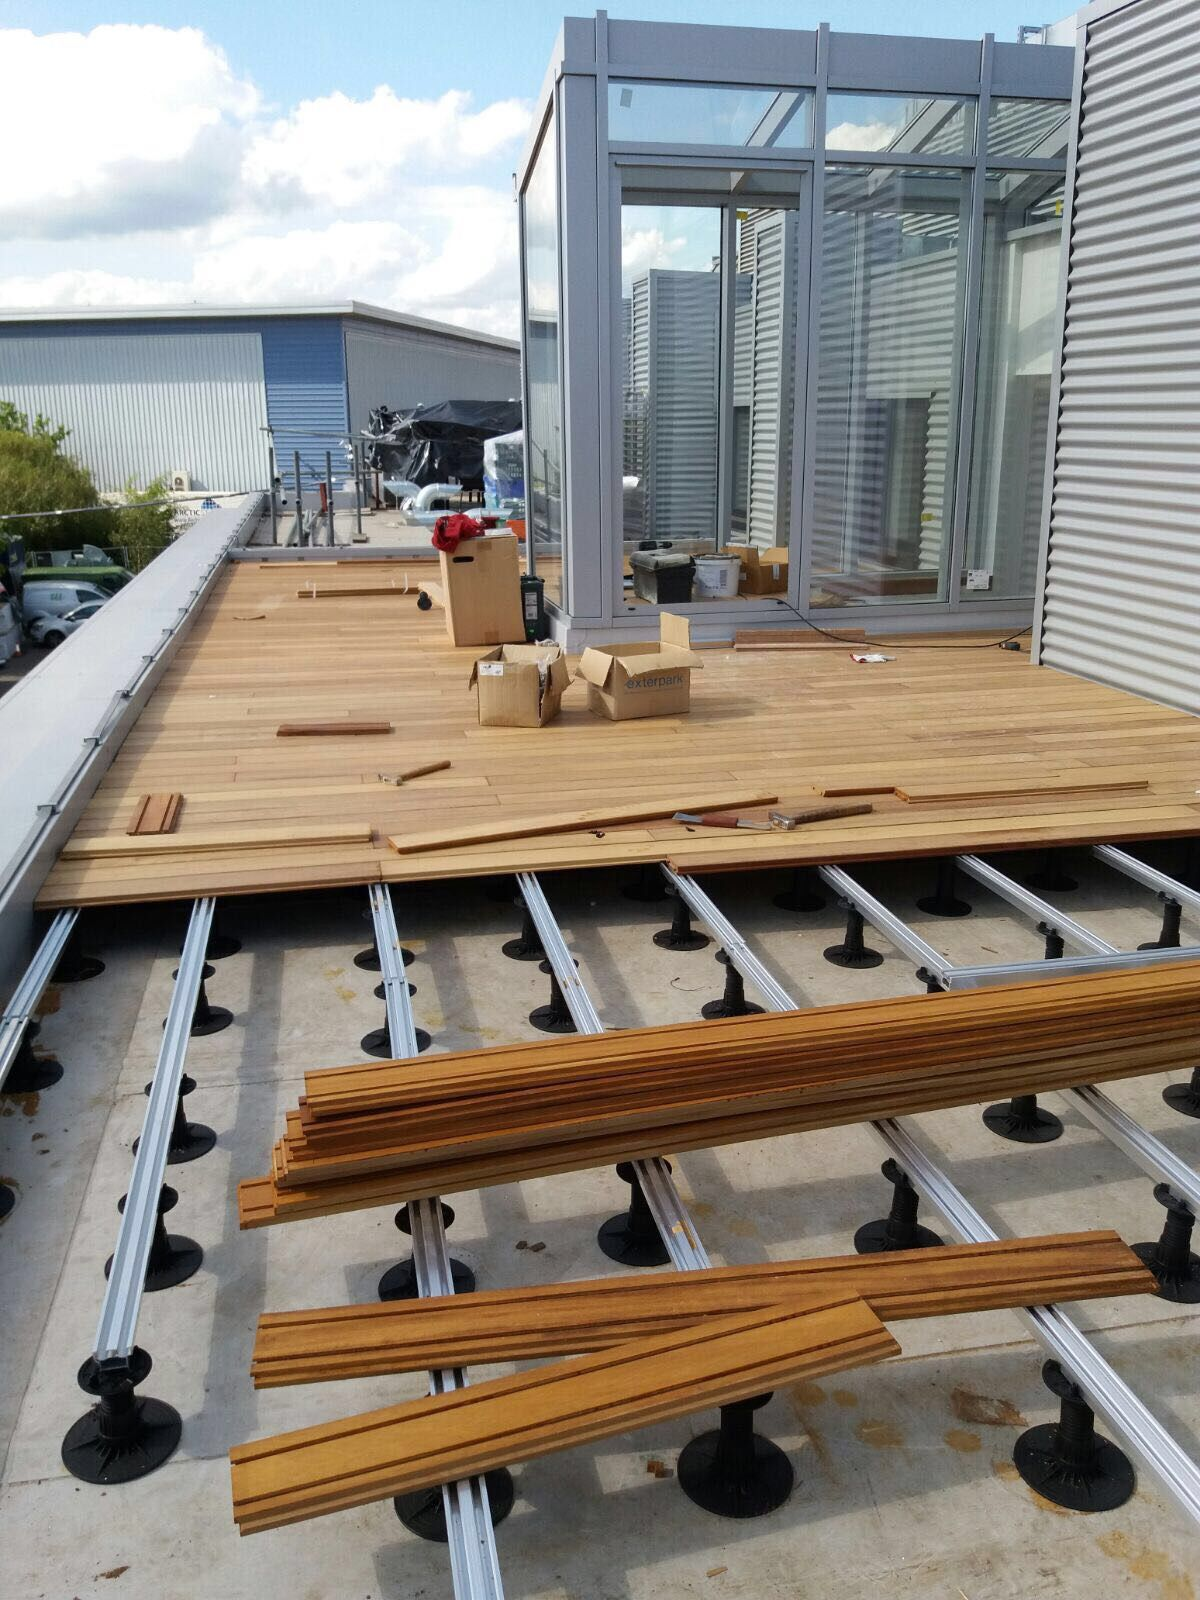 Can I Use Aluminum Or Plastic Sheeting Between Decking And Joists